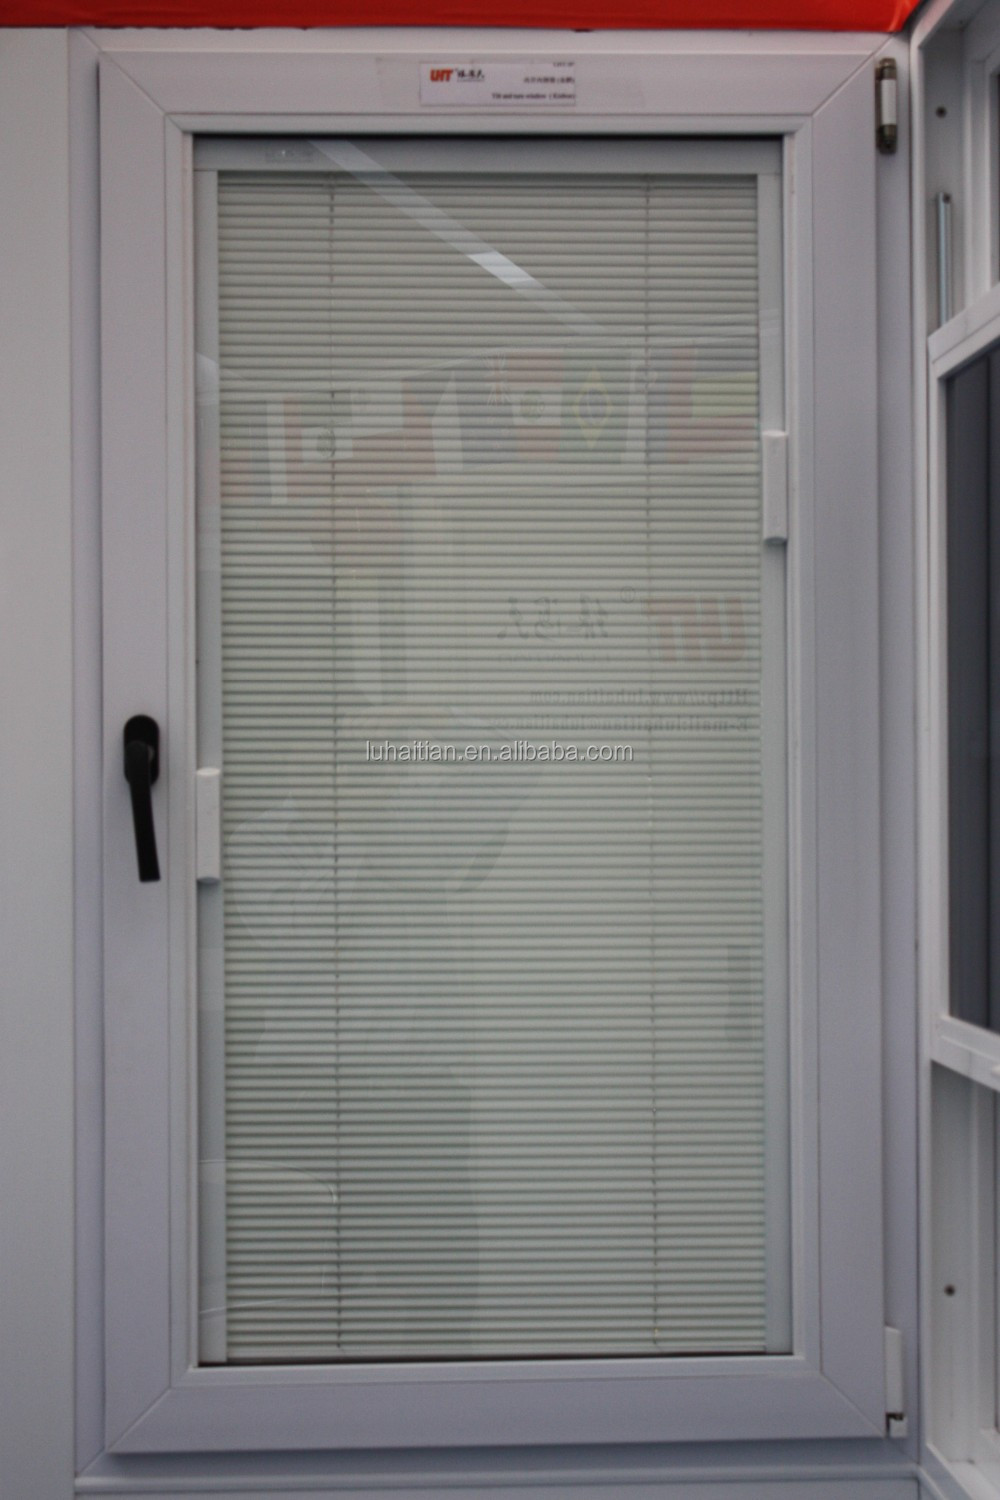 Electric bullet proof window display pvc transparent - Electric window shutters interior ...